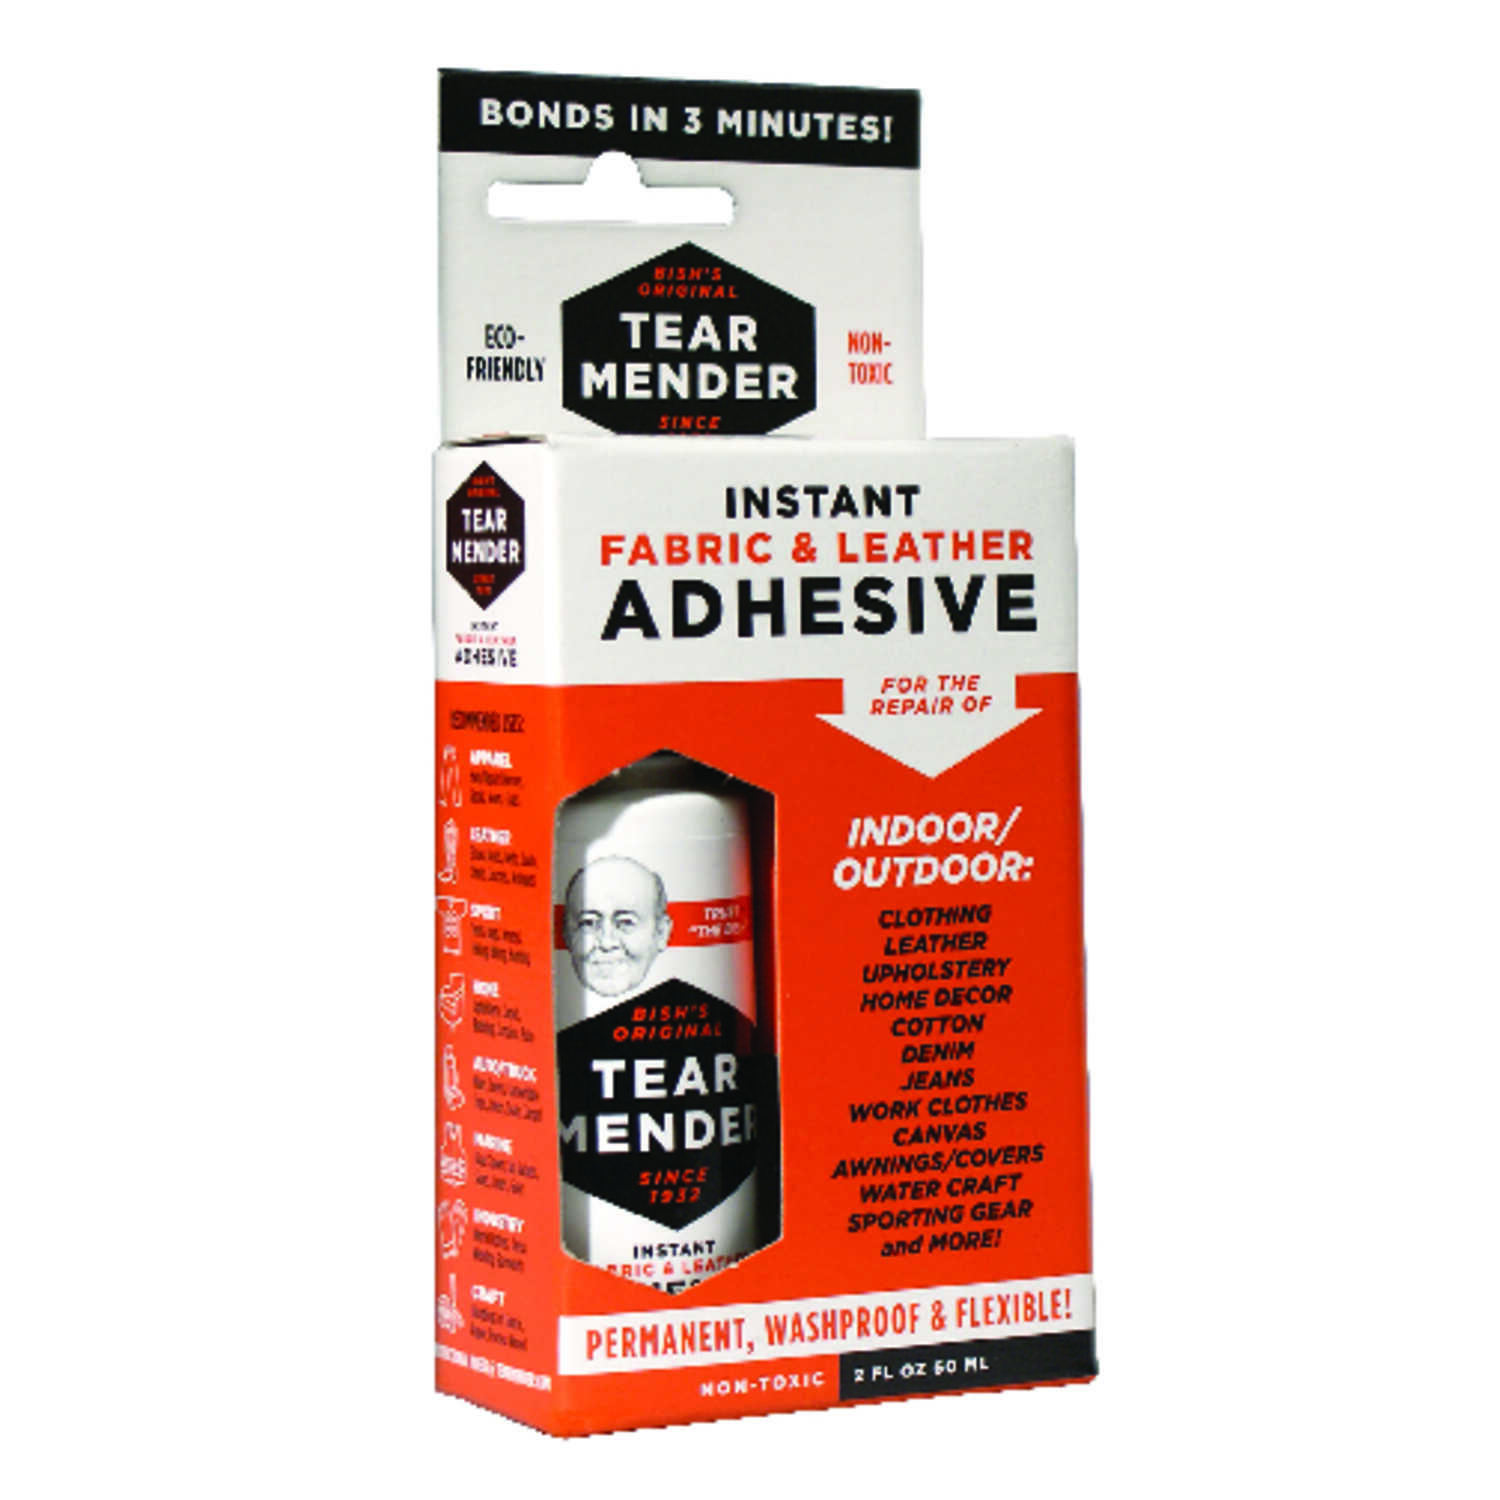 Tear Mender  High Strength  Liquid  Fabric & Leather Adhesive  2 Oz